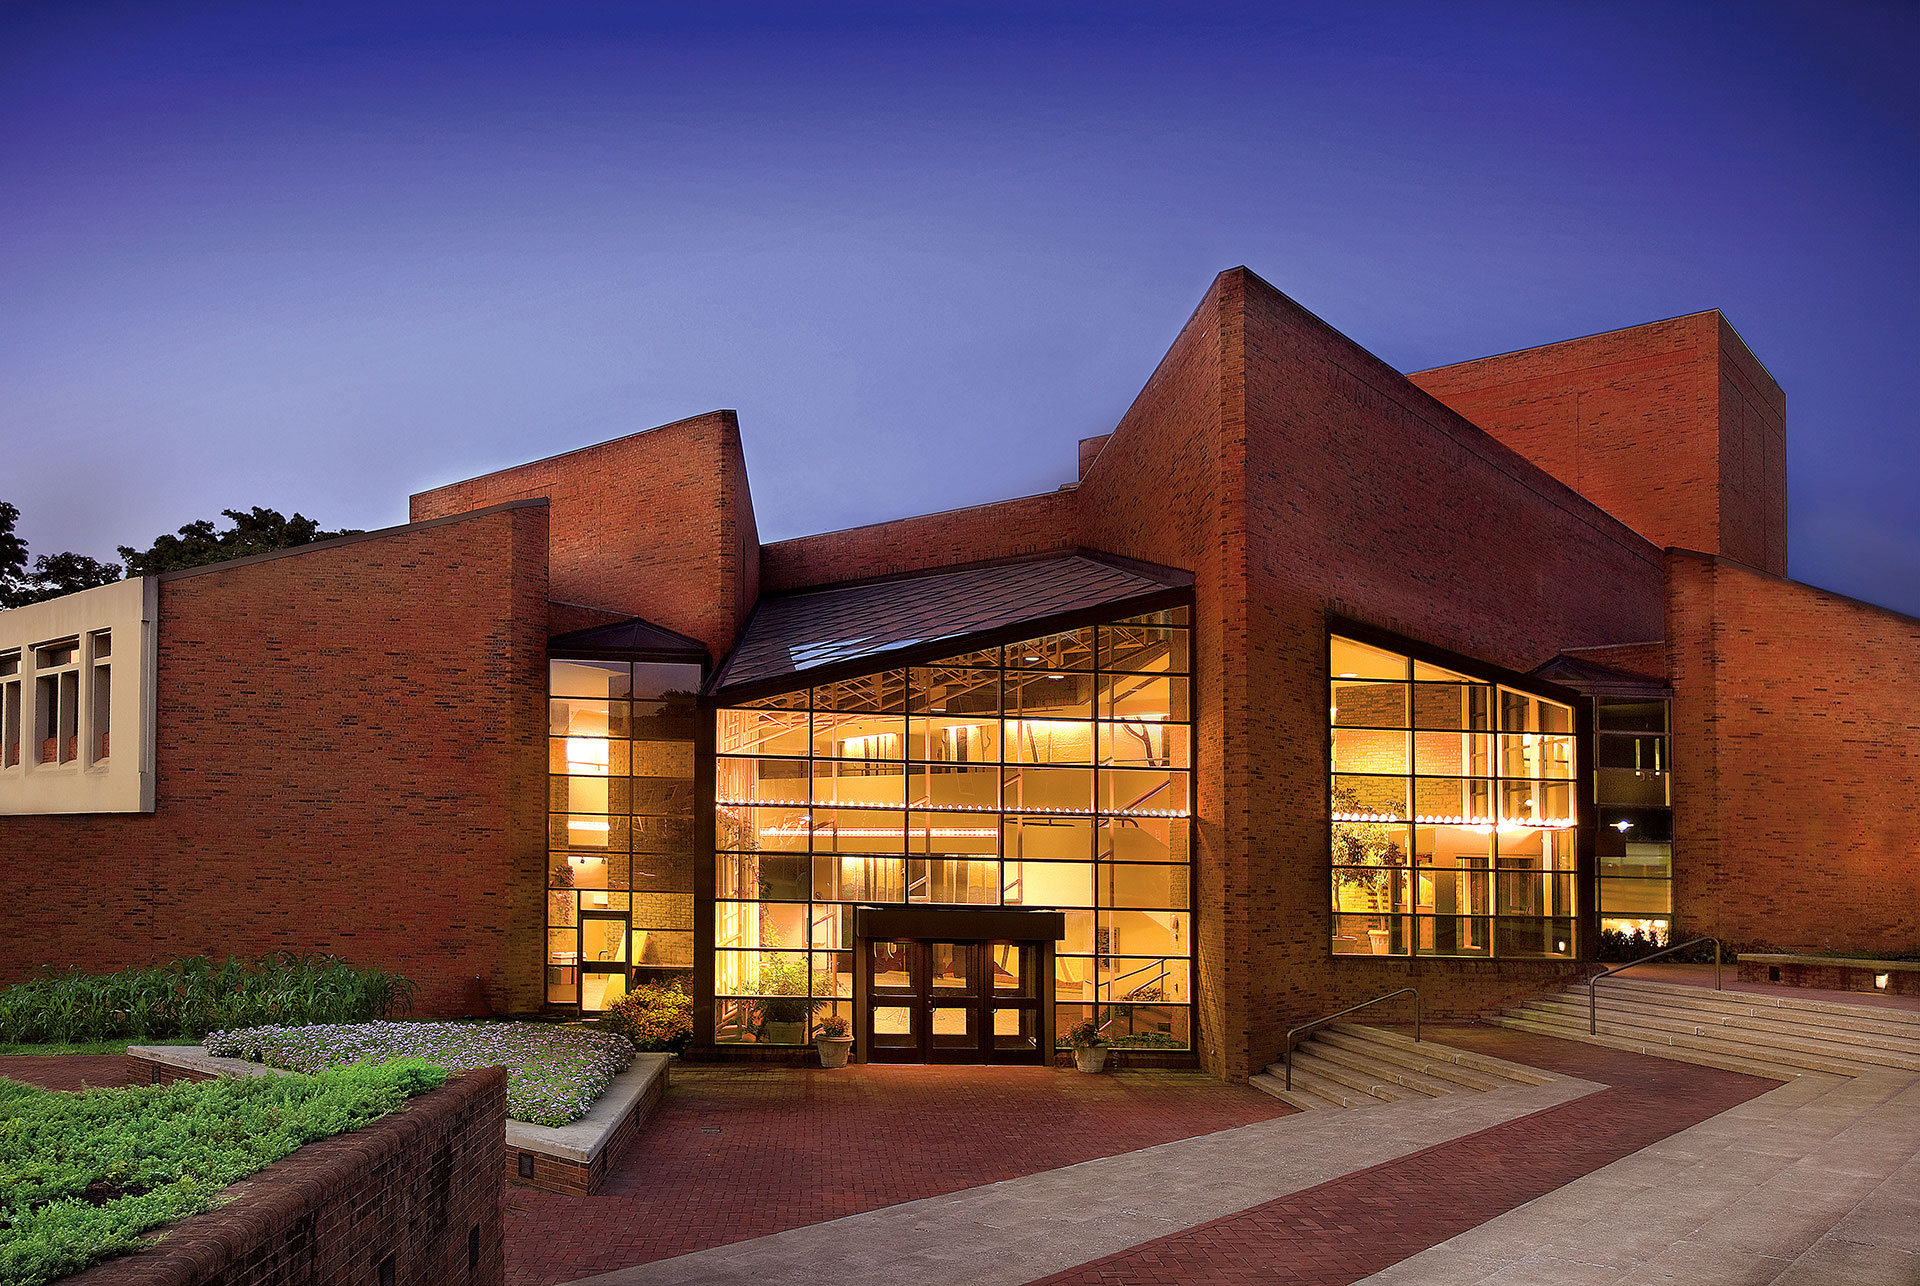 Williams Center for the Arts facade, lit from within at dusk